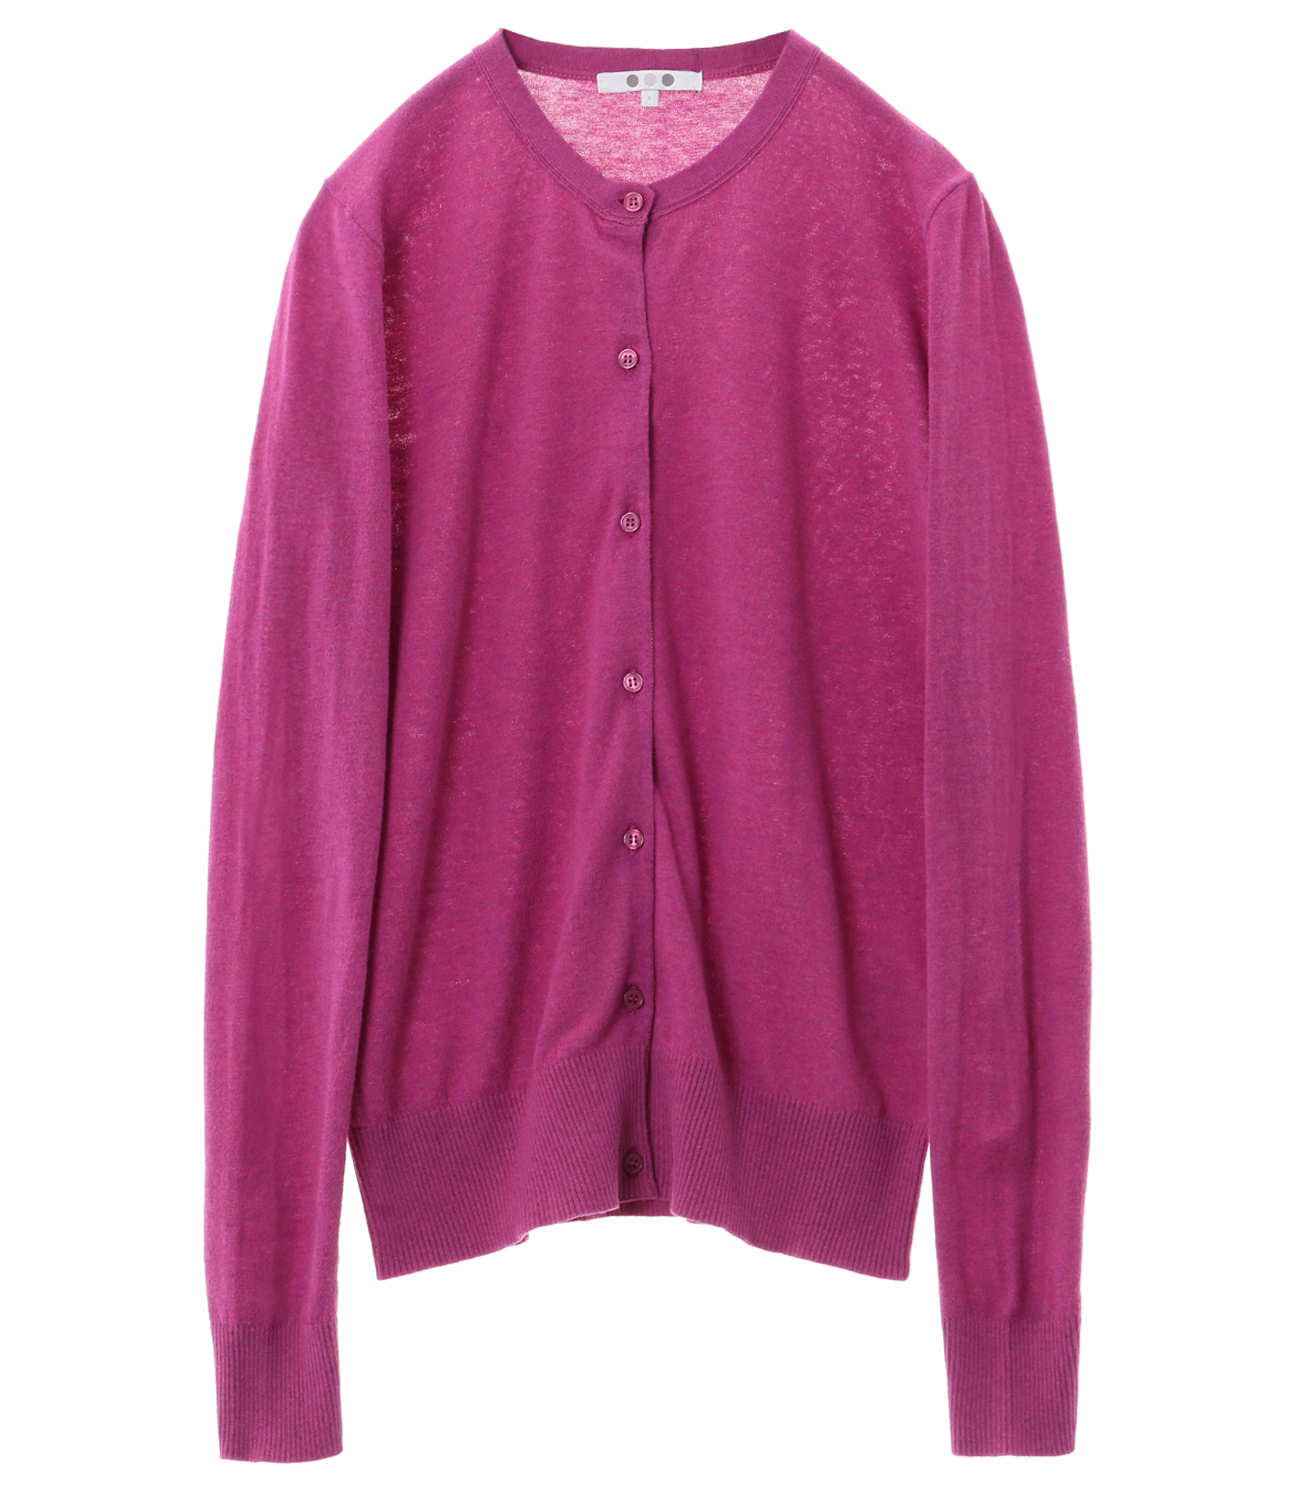 cotton melange cardigan 詳細画像 plum berry 1